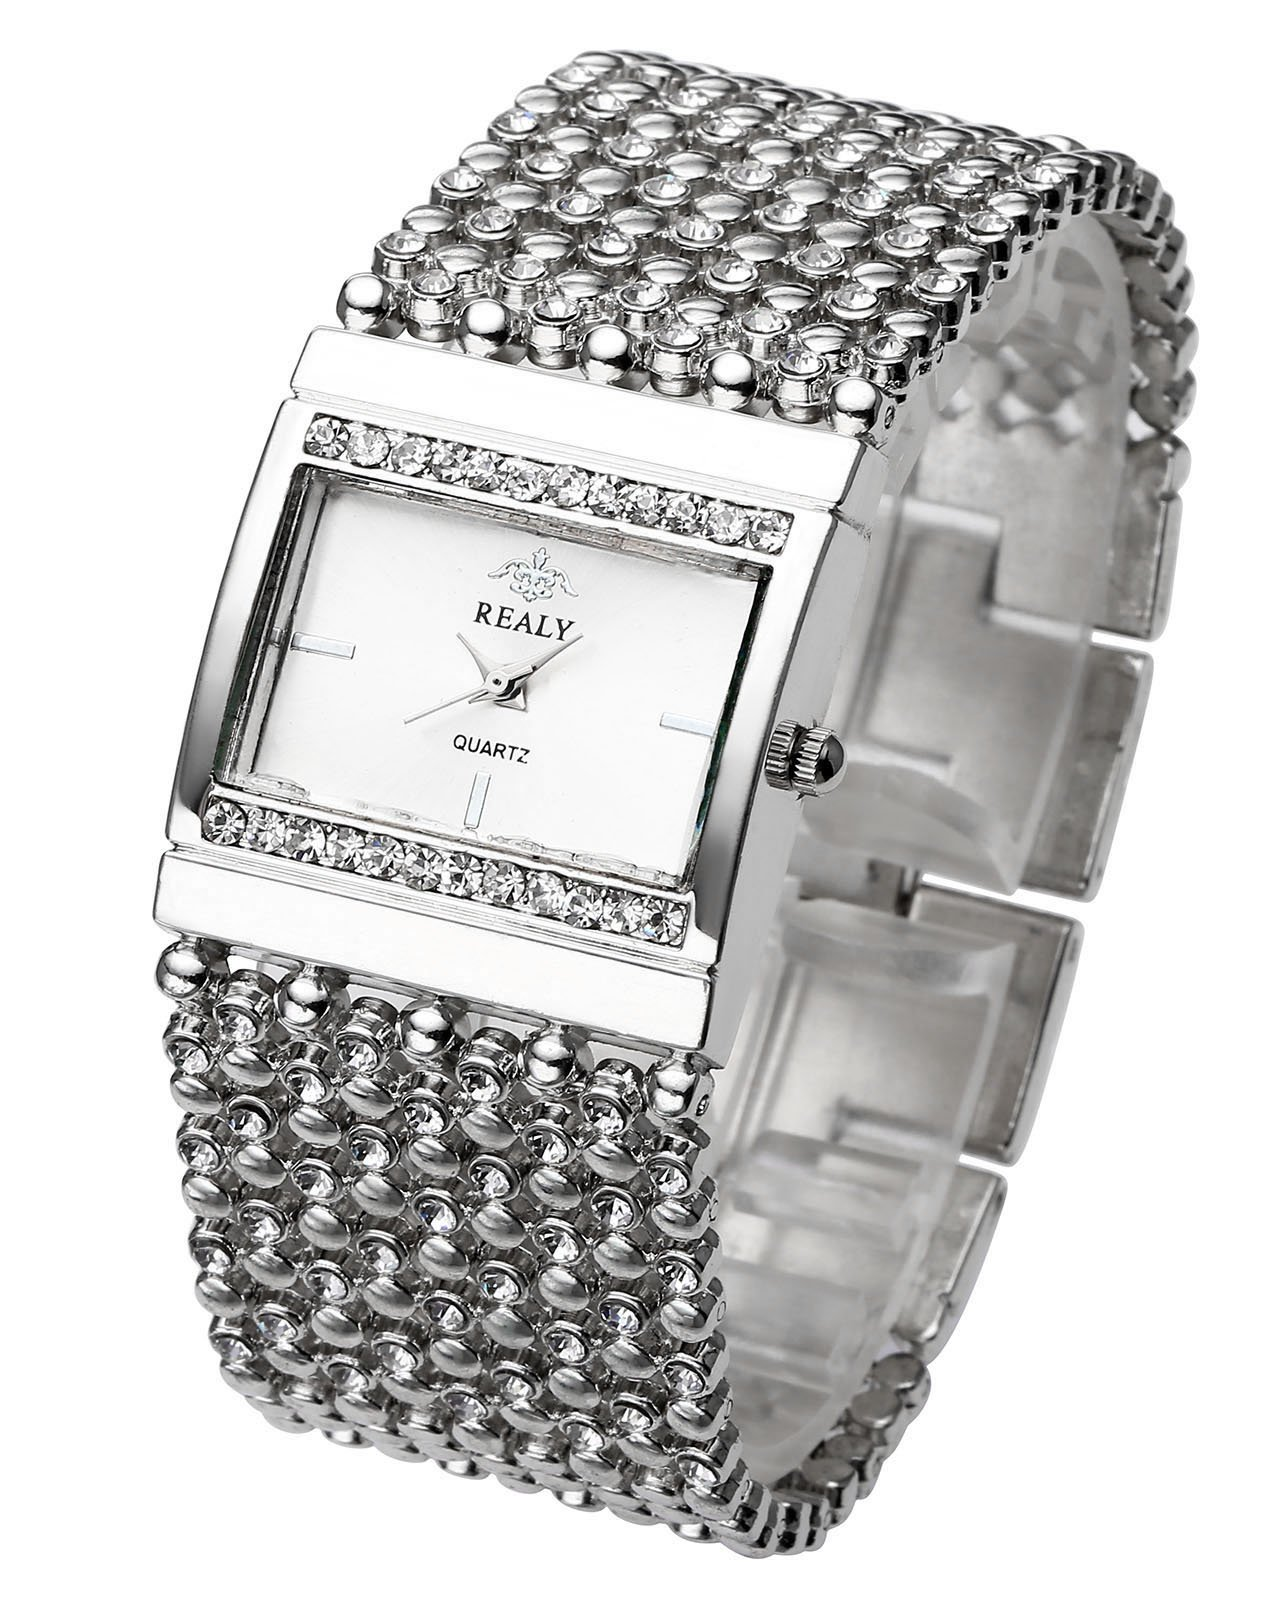 Top Plaza Women Luxury Fashion Bracelet Analog Quartz Watch Silver Tone Big Face Large Dial Wide Band Rhinestone Decorated Waterproof Cuff Watch,Rectangle Case 38×25 MM